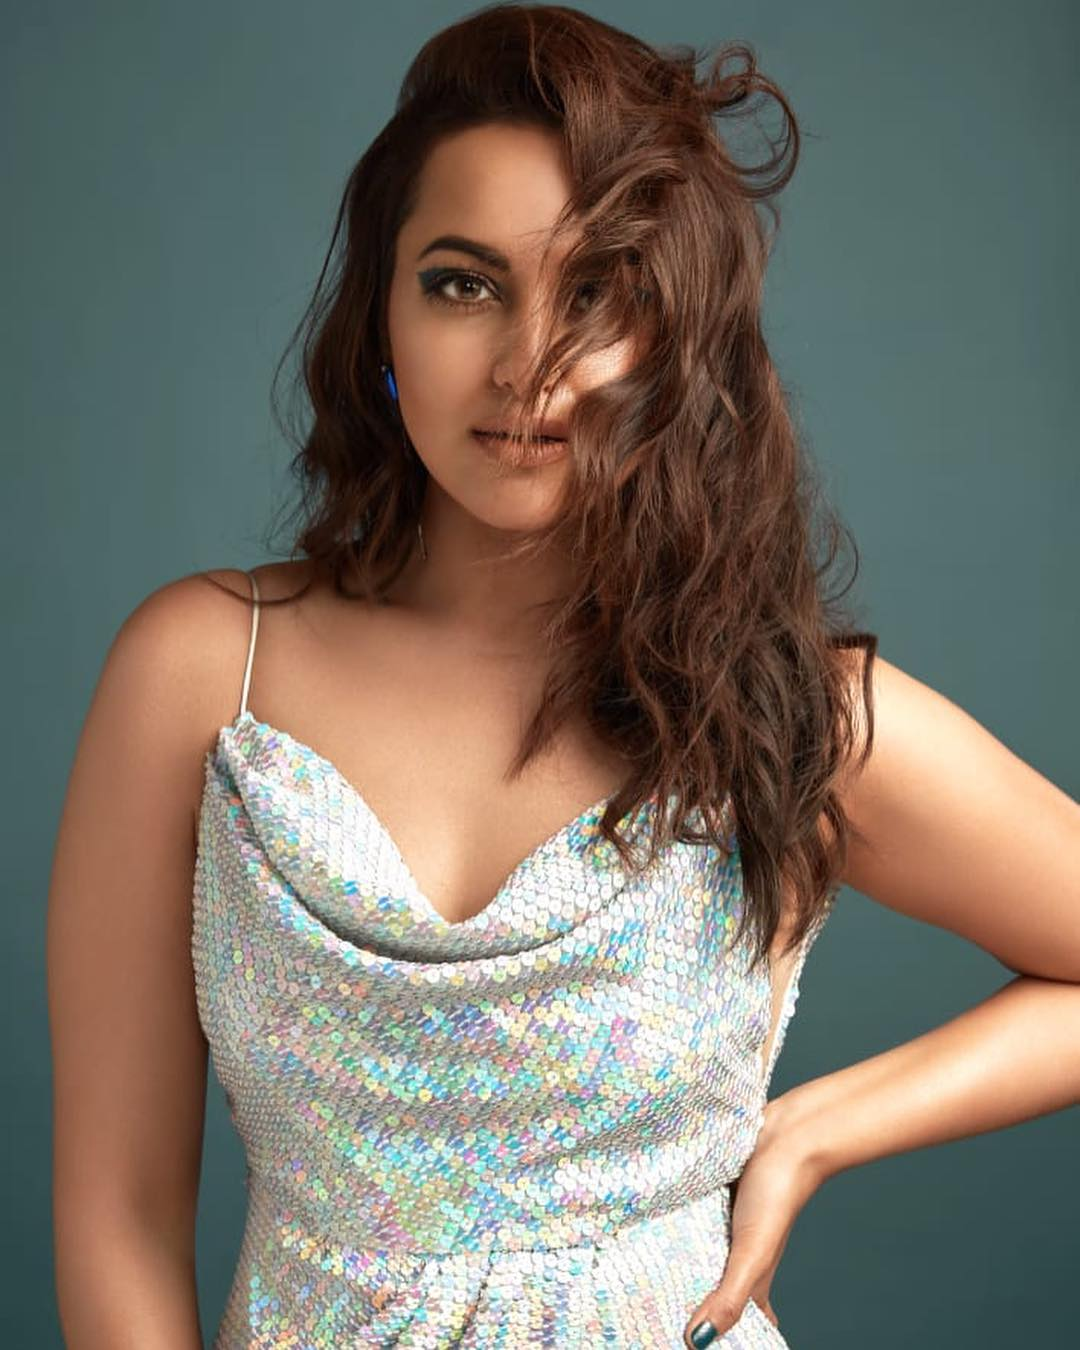 Sonakshi-Sinha-Wallpapers-Insta-Fit-Bio-2